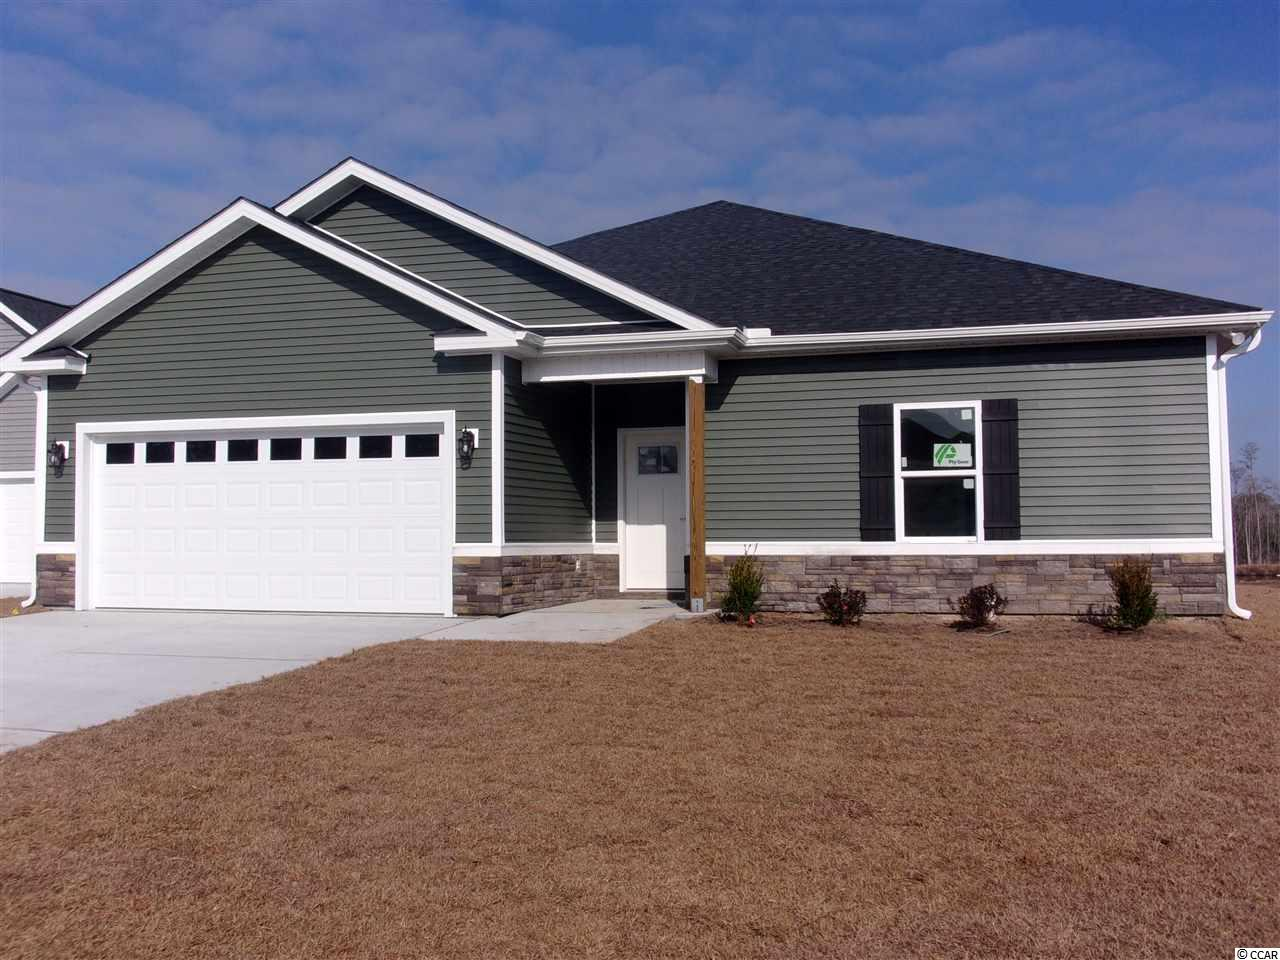 Don't miss out on this stunning New Construction pond view home in The Reserve @ Heritage Downs. This 3 Bedroom 2 bath includes a shiplap wall in the great room/living room. The kitchen comes with stainless steel appliances (Stove, Microwave, and Dishwasher) upgraded soft close cabinets with granite countertops, a gas range, large work island with a breakfast bar, and pantry for extra storage. The master suite includes double sink vanities a tile shower with bench and a large walk-in closet. Each bedroom includes a ceiling fan and plenty of closet space. Guest bathroom includes a Fiberglass tub with a tile wall. Other features include 9' ceilings on the first floor, an optional gas HVAC system, tankless gas water heater, WIFI thermostat, and much more. Yes! You can have a pool in your very own back yard.  Stop by the model home for more information and ask about the new community and other model homes, upgrades. Conveniently located to some of the finest dining, shopping, golf, beaches, schools, hospitals, and downtown Conway, Myrtle Beach, and North Myrtle Beach. GPS Long Leaf Drive - we will be the neighborhood on the left